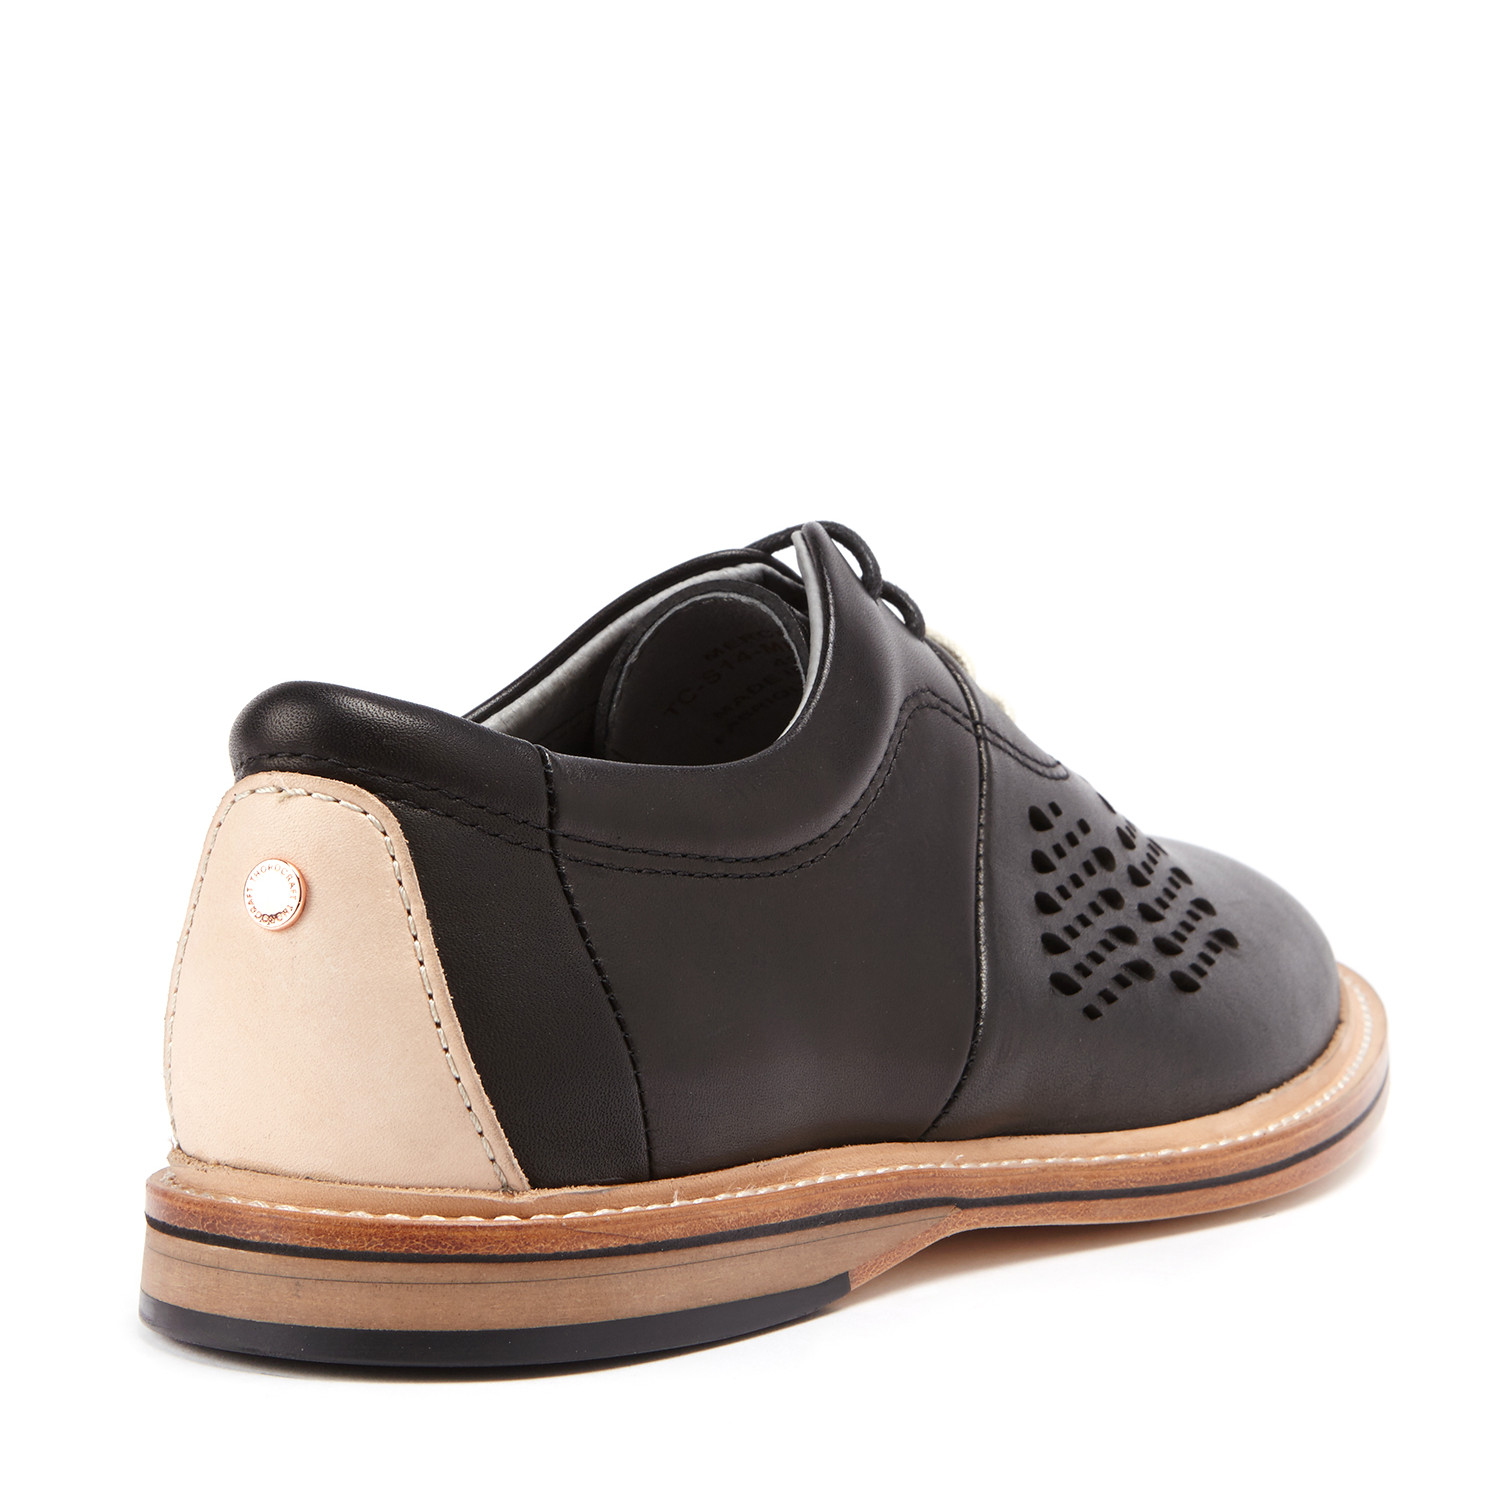 Mercer // Black (US: 12) - Shoe Clearance